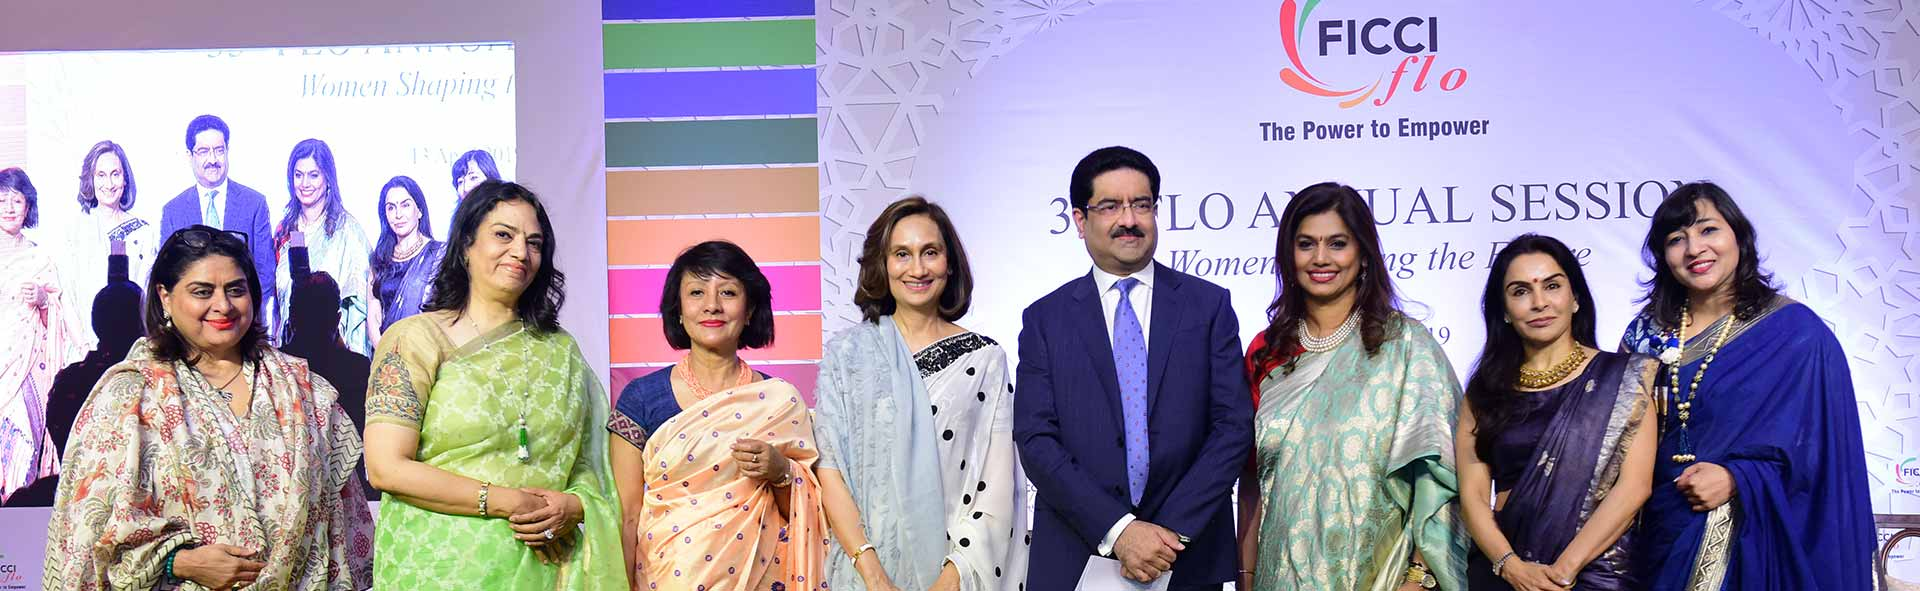 FICCI FLO - The Power to Empower